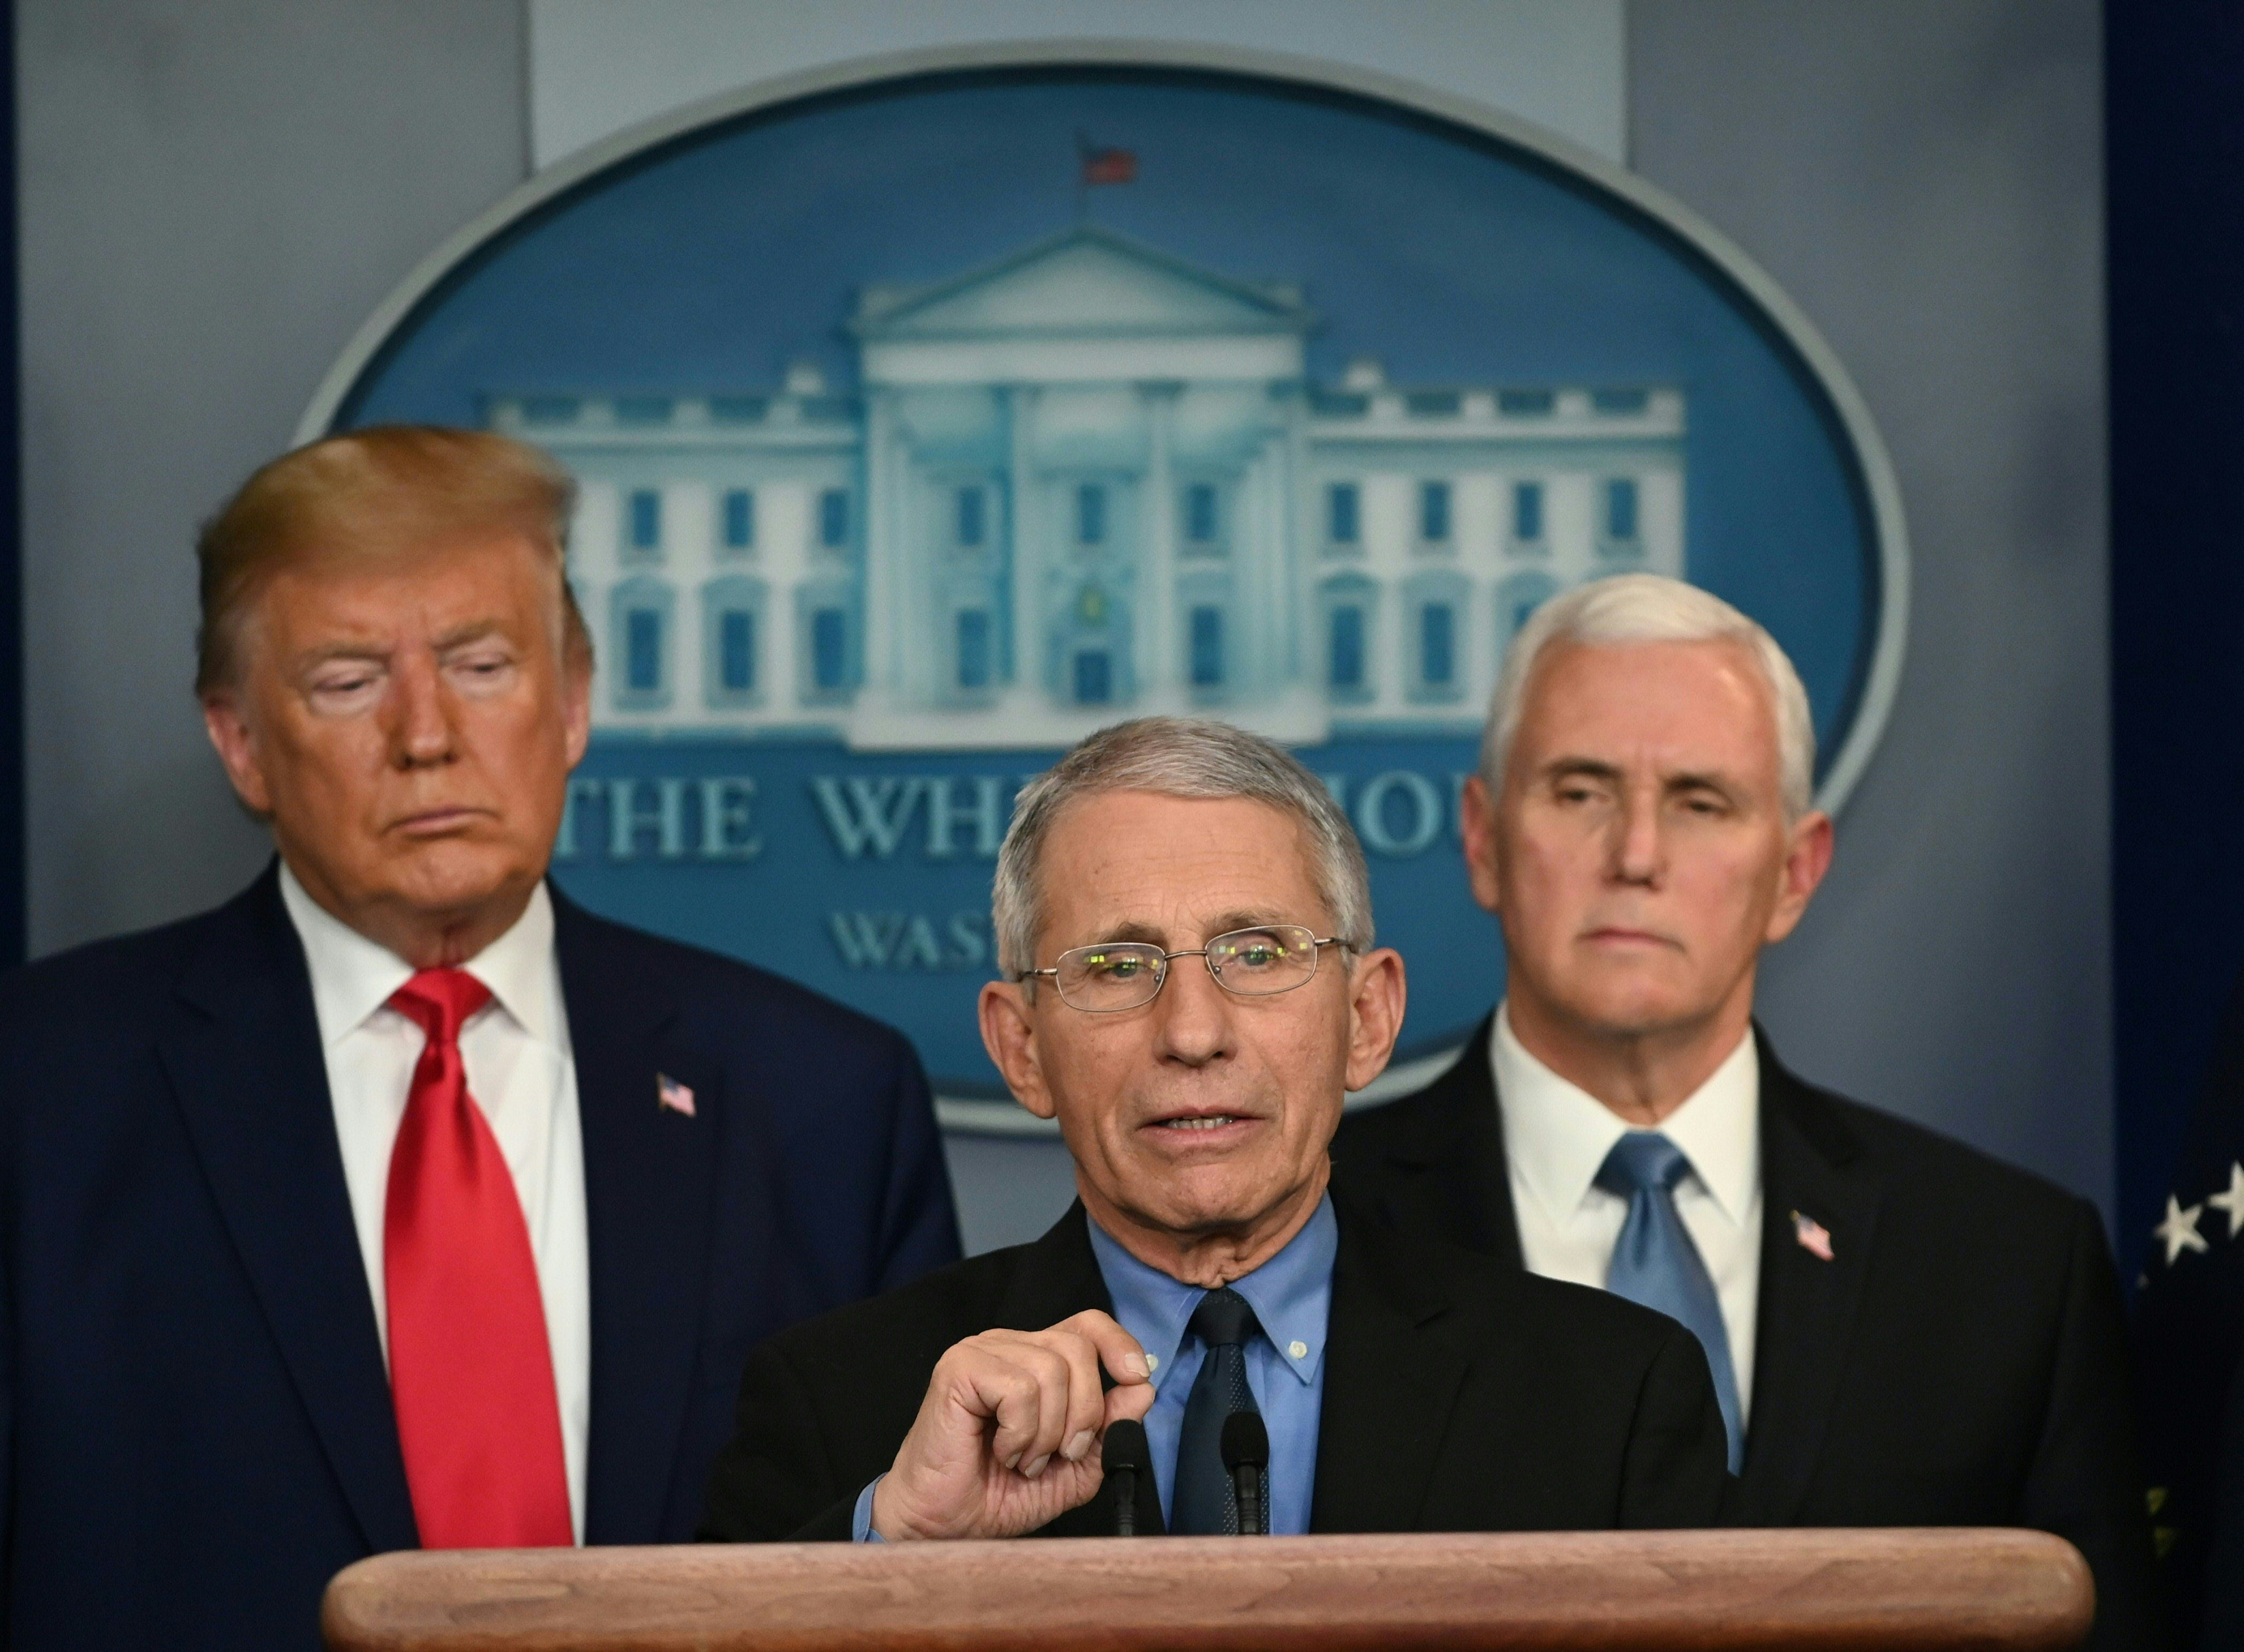 Dr. Anthony Fauci, the nation's top infectious disease expert, speaks about the COVID-19 outbreak during a White House press conference Feb. 29, 2020, flanked by President Donald Trump, left, and Vice President Mike Pence.